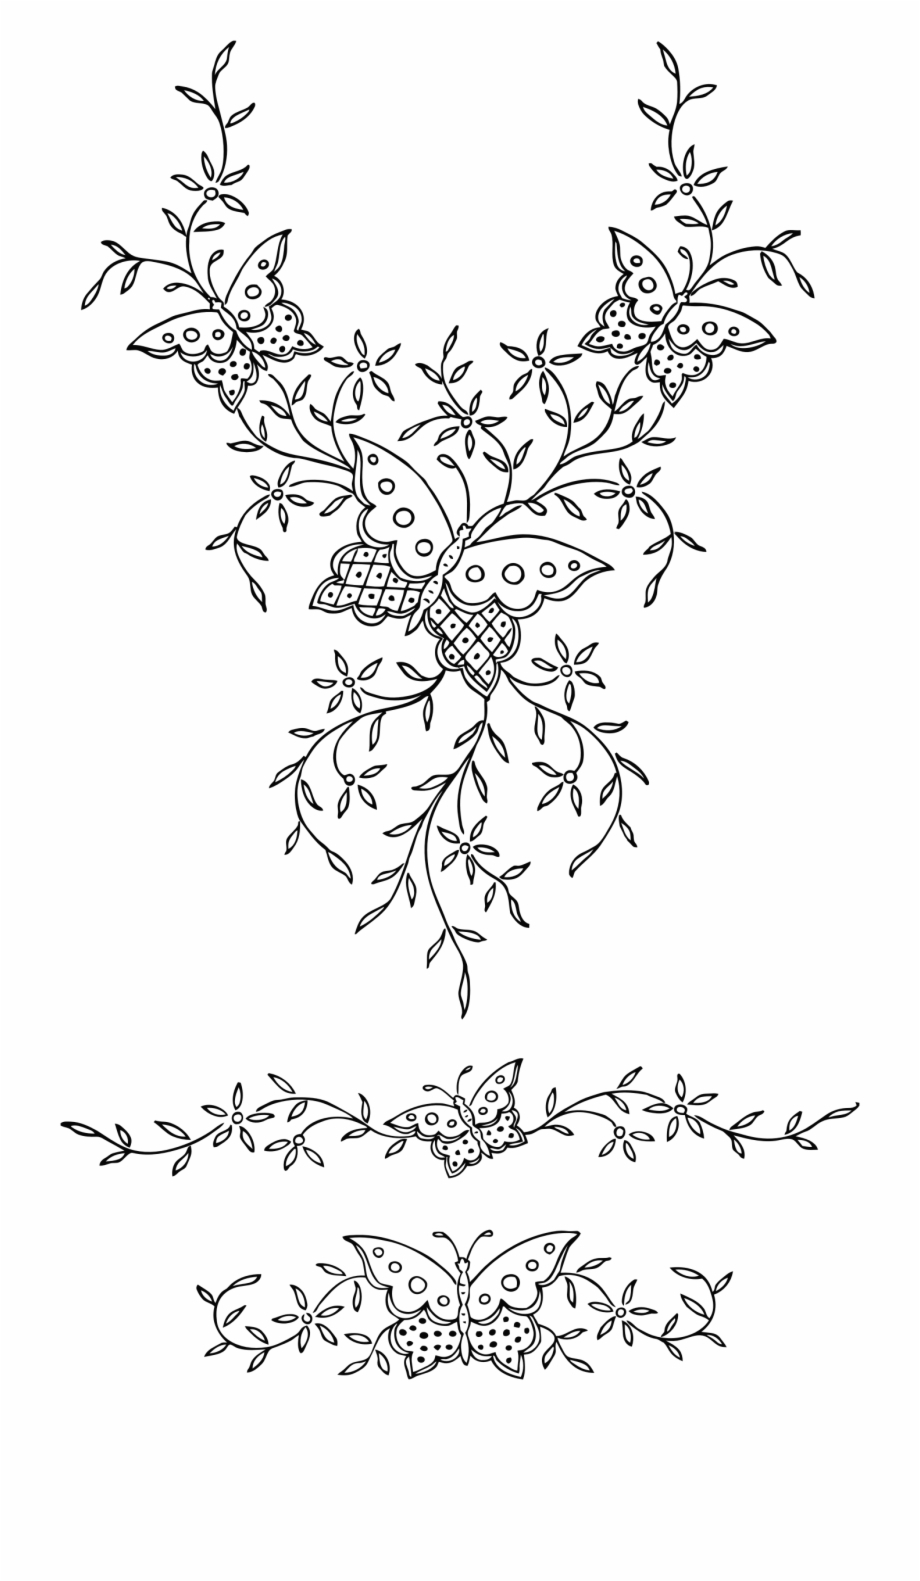 Free Flower Embroidery Patterns This Free Icons Png Design Of Ornamental Butterflies Victorian